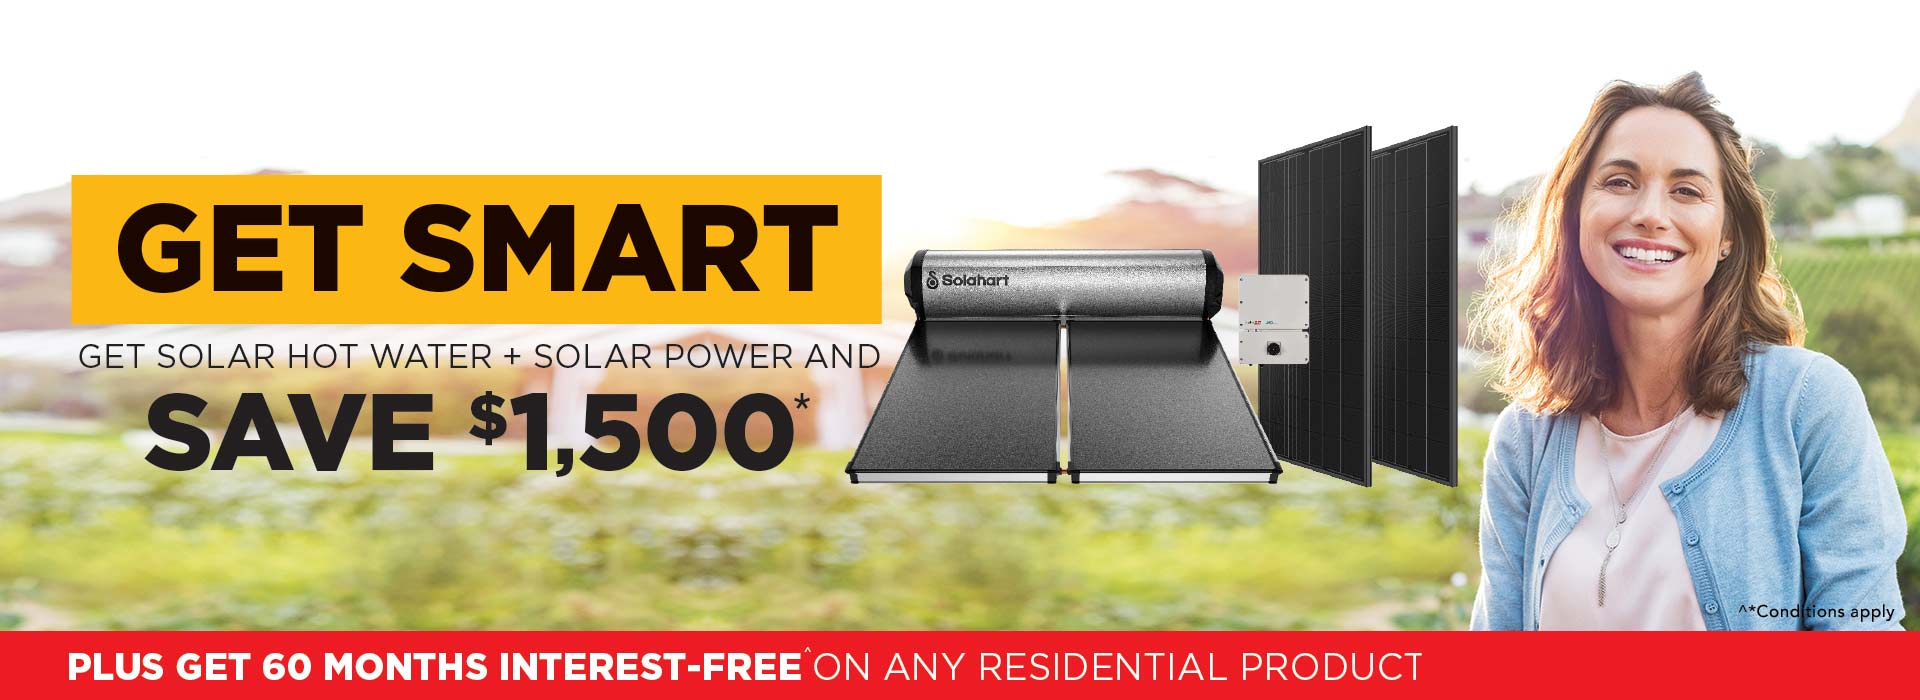 Get Solahart Solar Hot Water and Solar Power now and save $1500